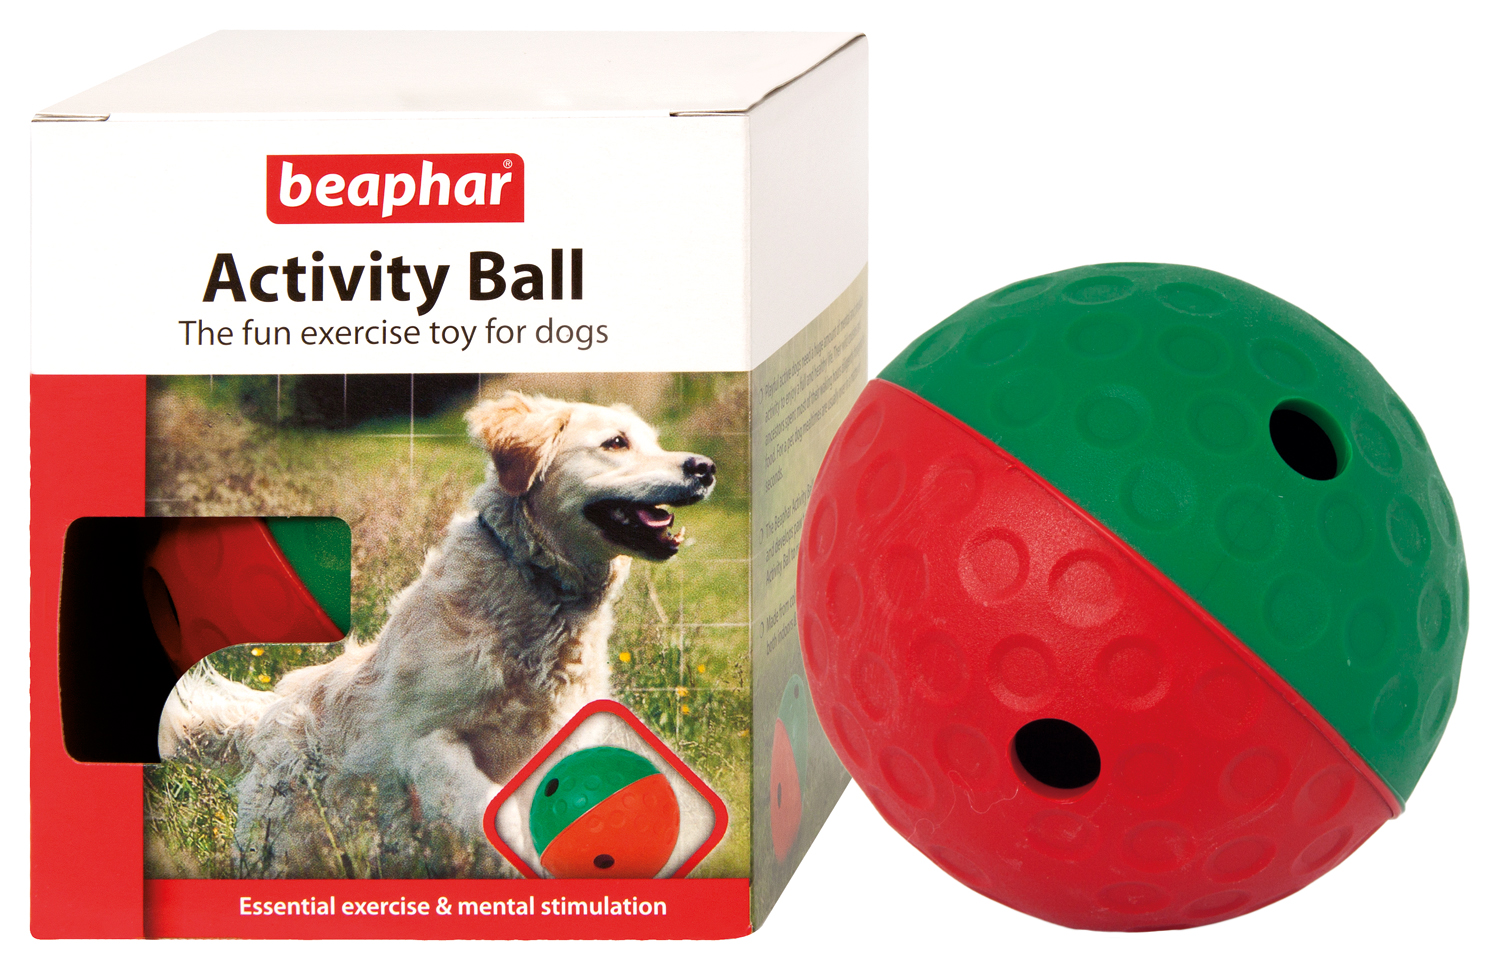 Beaphar Activity Ball for Dogs